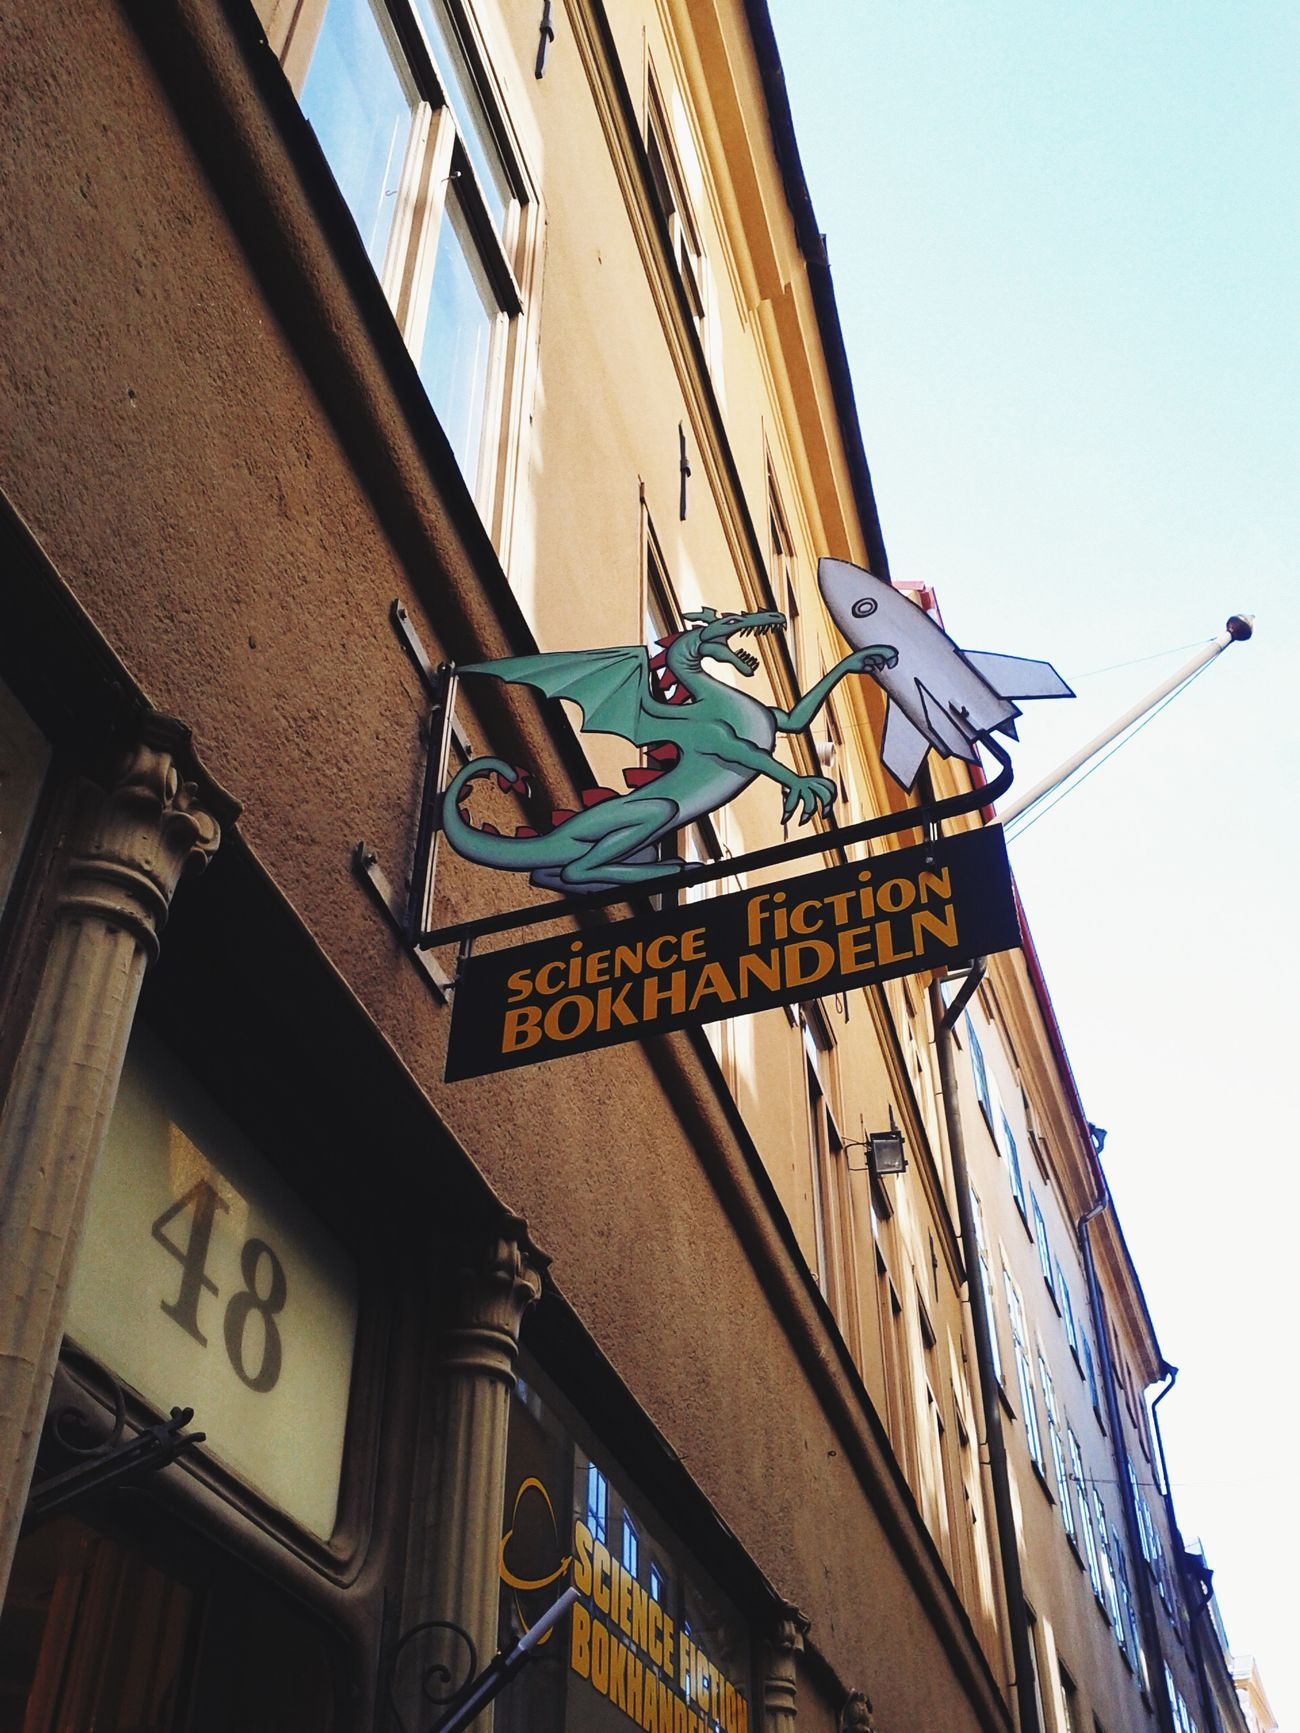 Bookstore Science Fiction Stockholm Signs